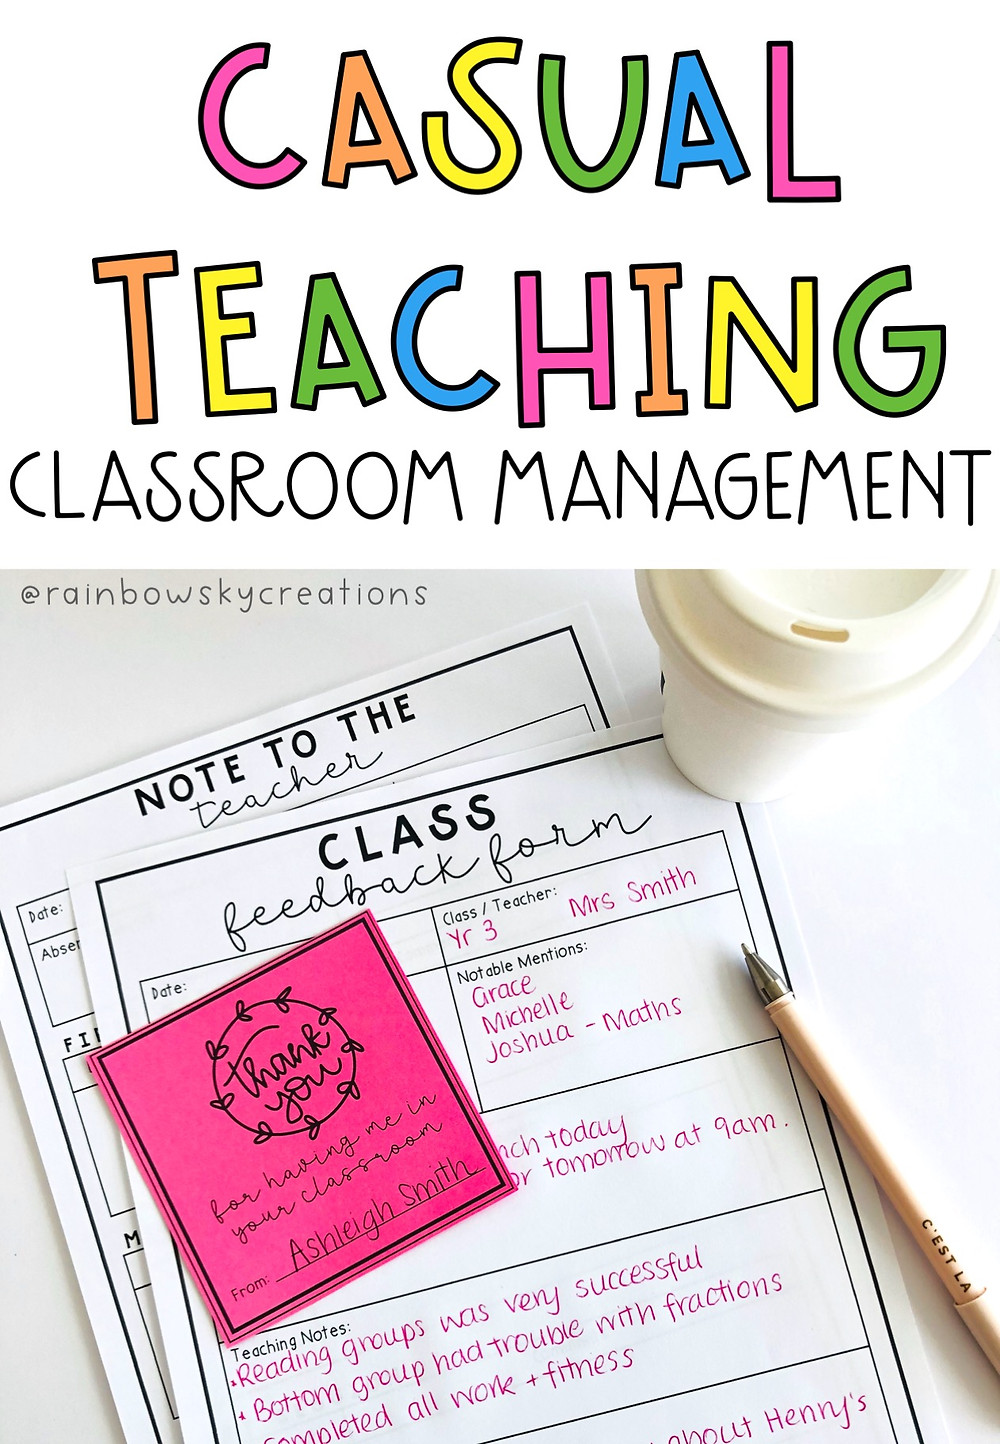 Classroom management when substitute teaching - Rainbow Sky Creations